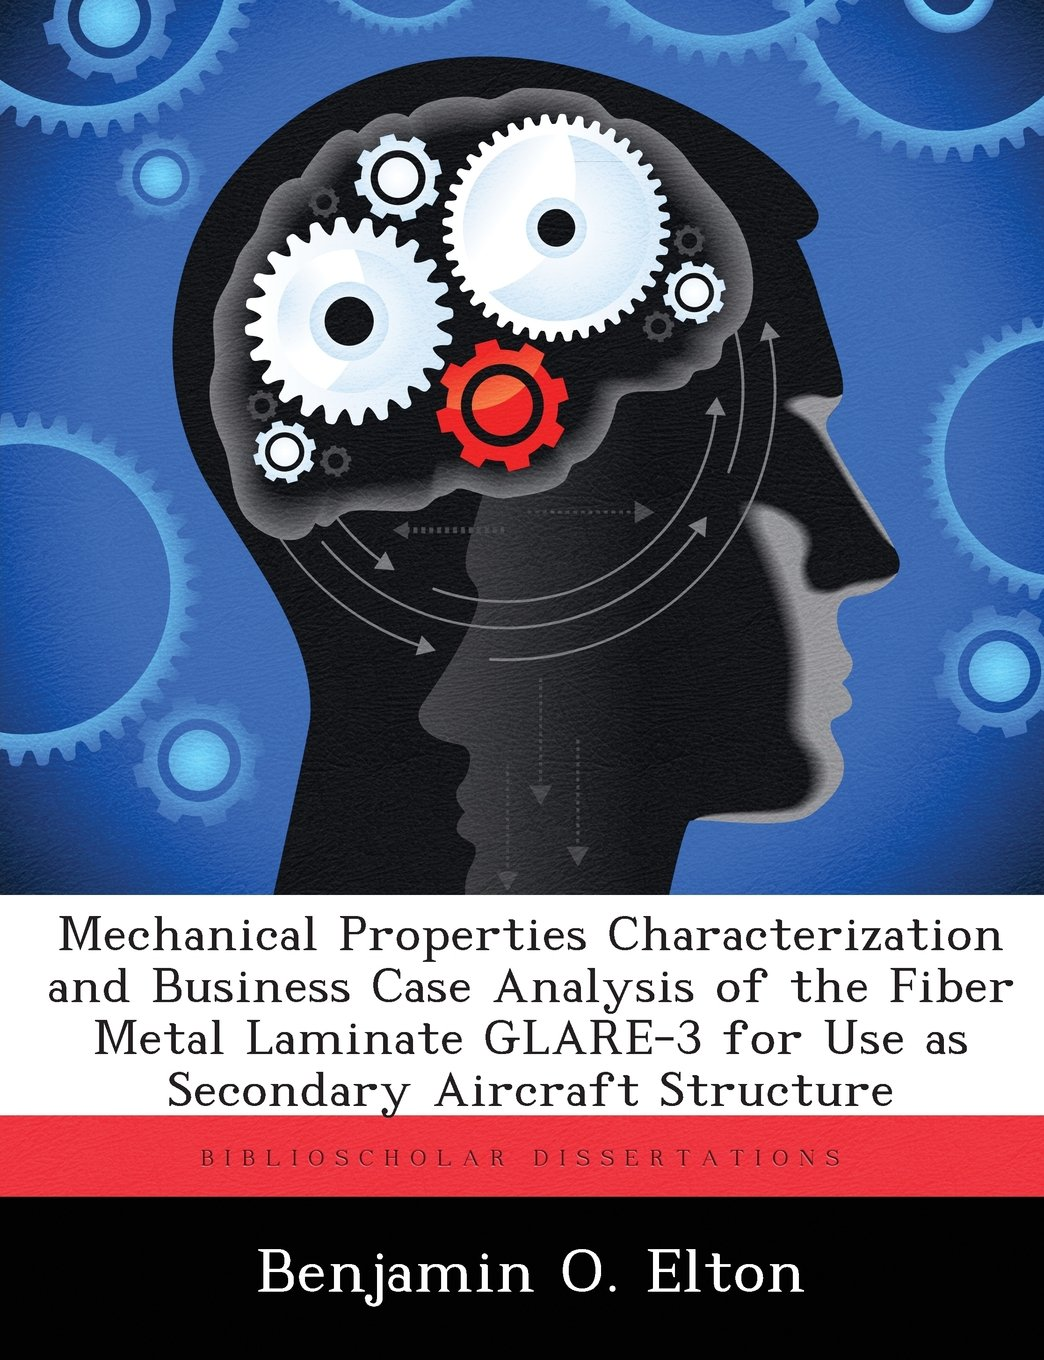 Download Mechanical Properties Characterization and Business Case Analysis of the Fiber Metal Laminate GLARE-3 for Use as Secondary Aircraft Structure pdf